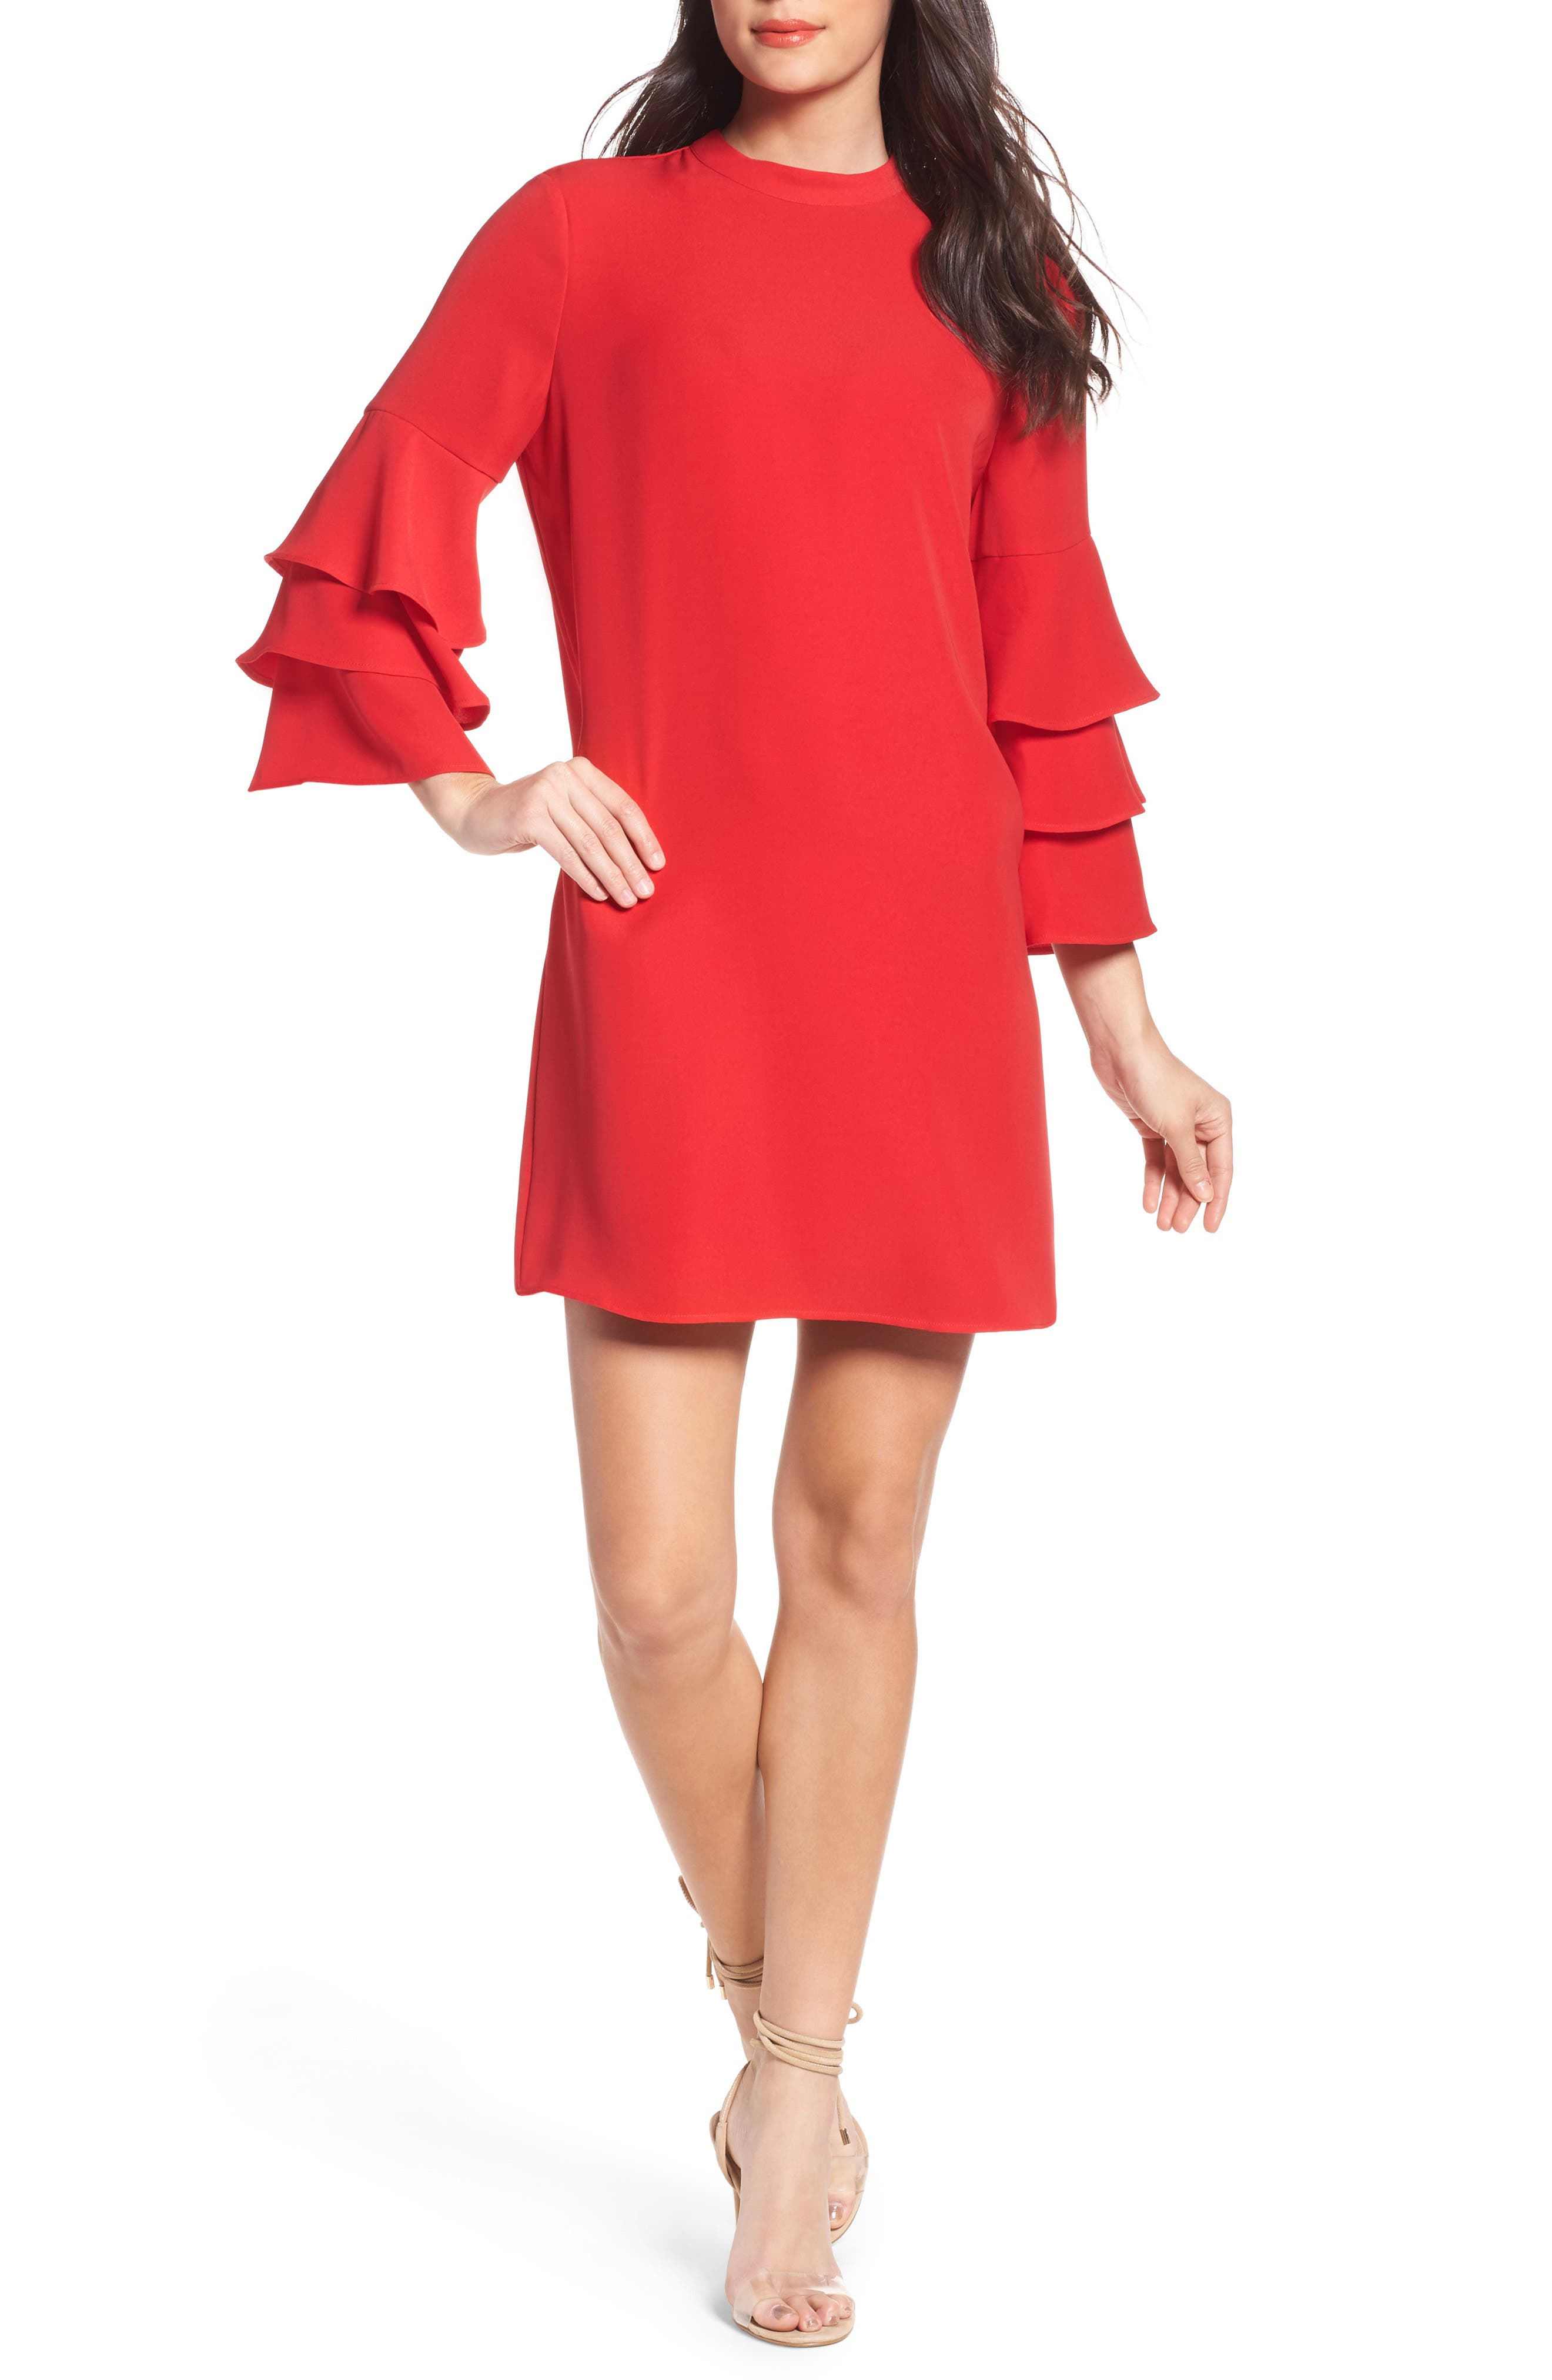 Ruffle Sleeve Shift Dress,                         Main,                         color, Red Mars